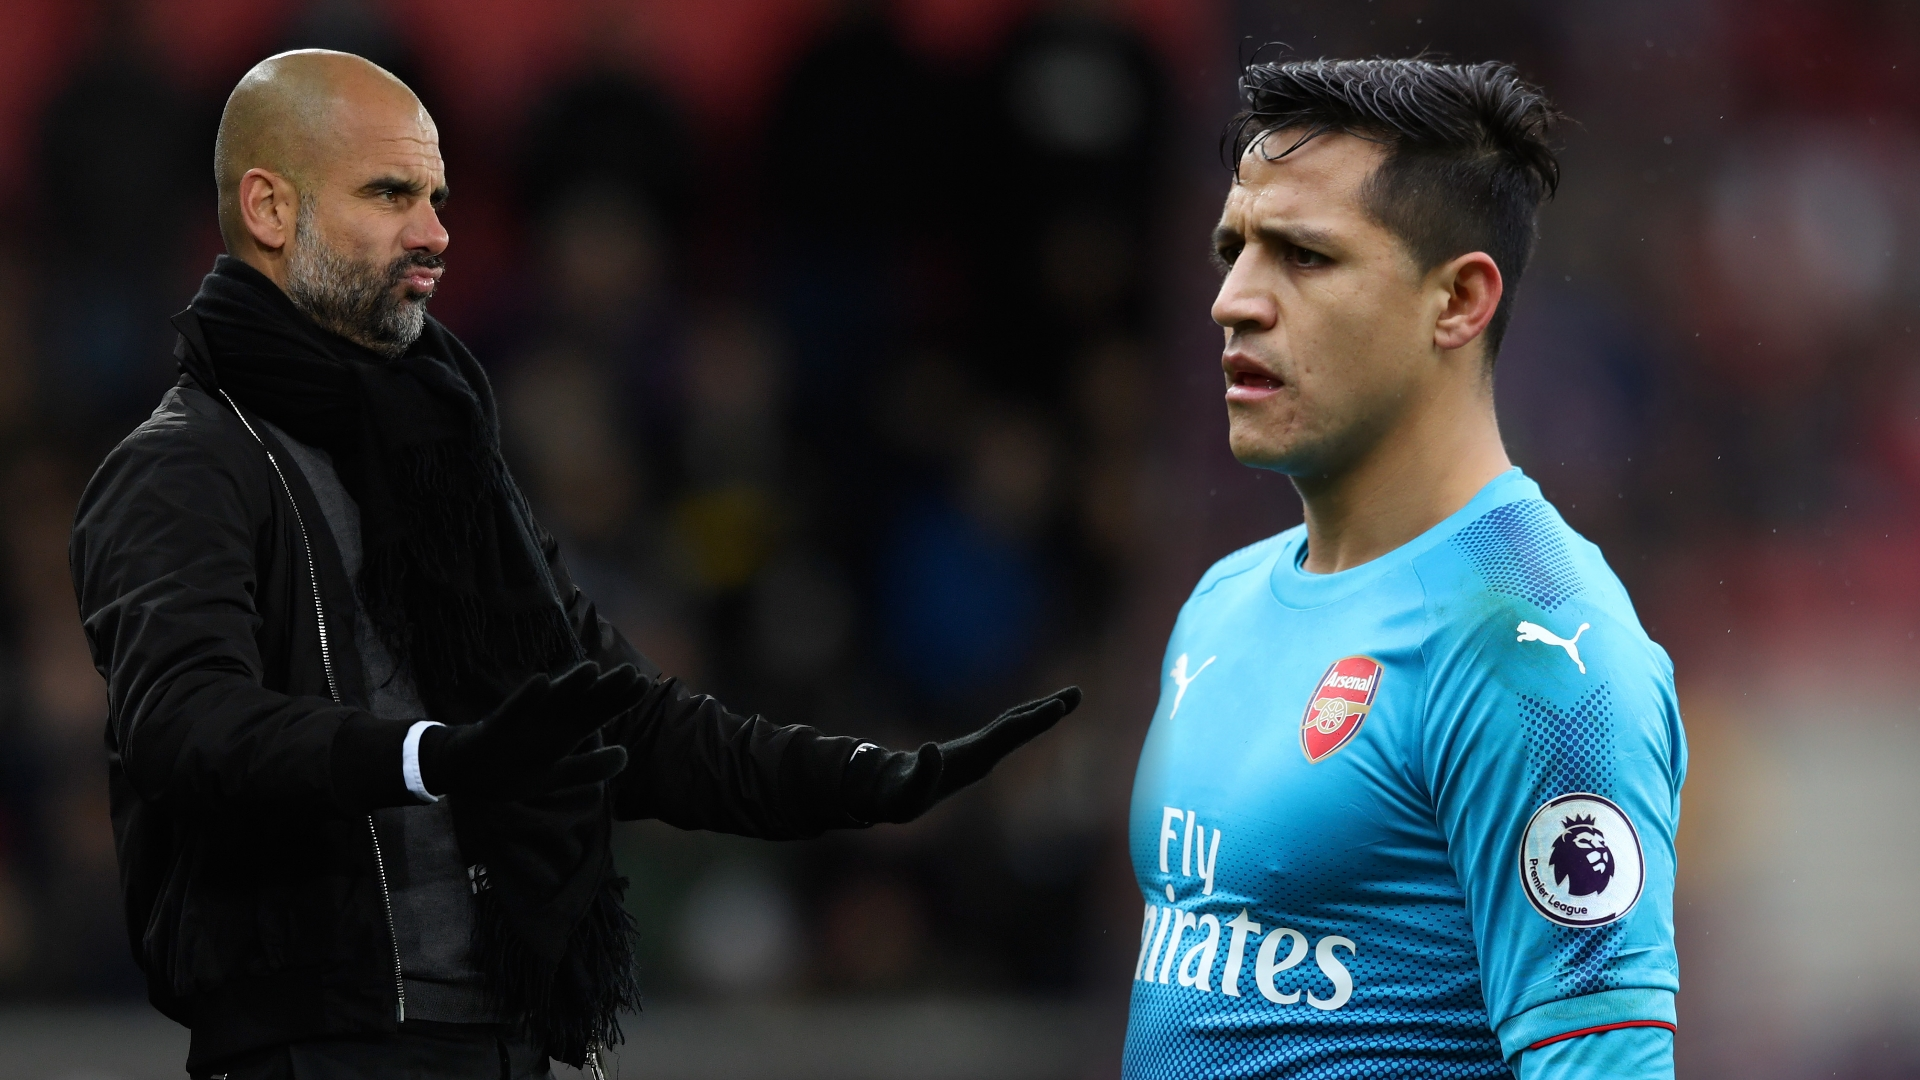 Arsenal's handling of Mesut Ozil, Alexis Sanchez deals 'disgusting' - Ian Wright